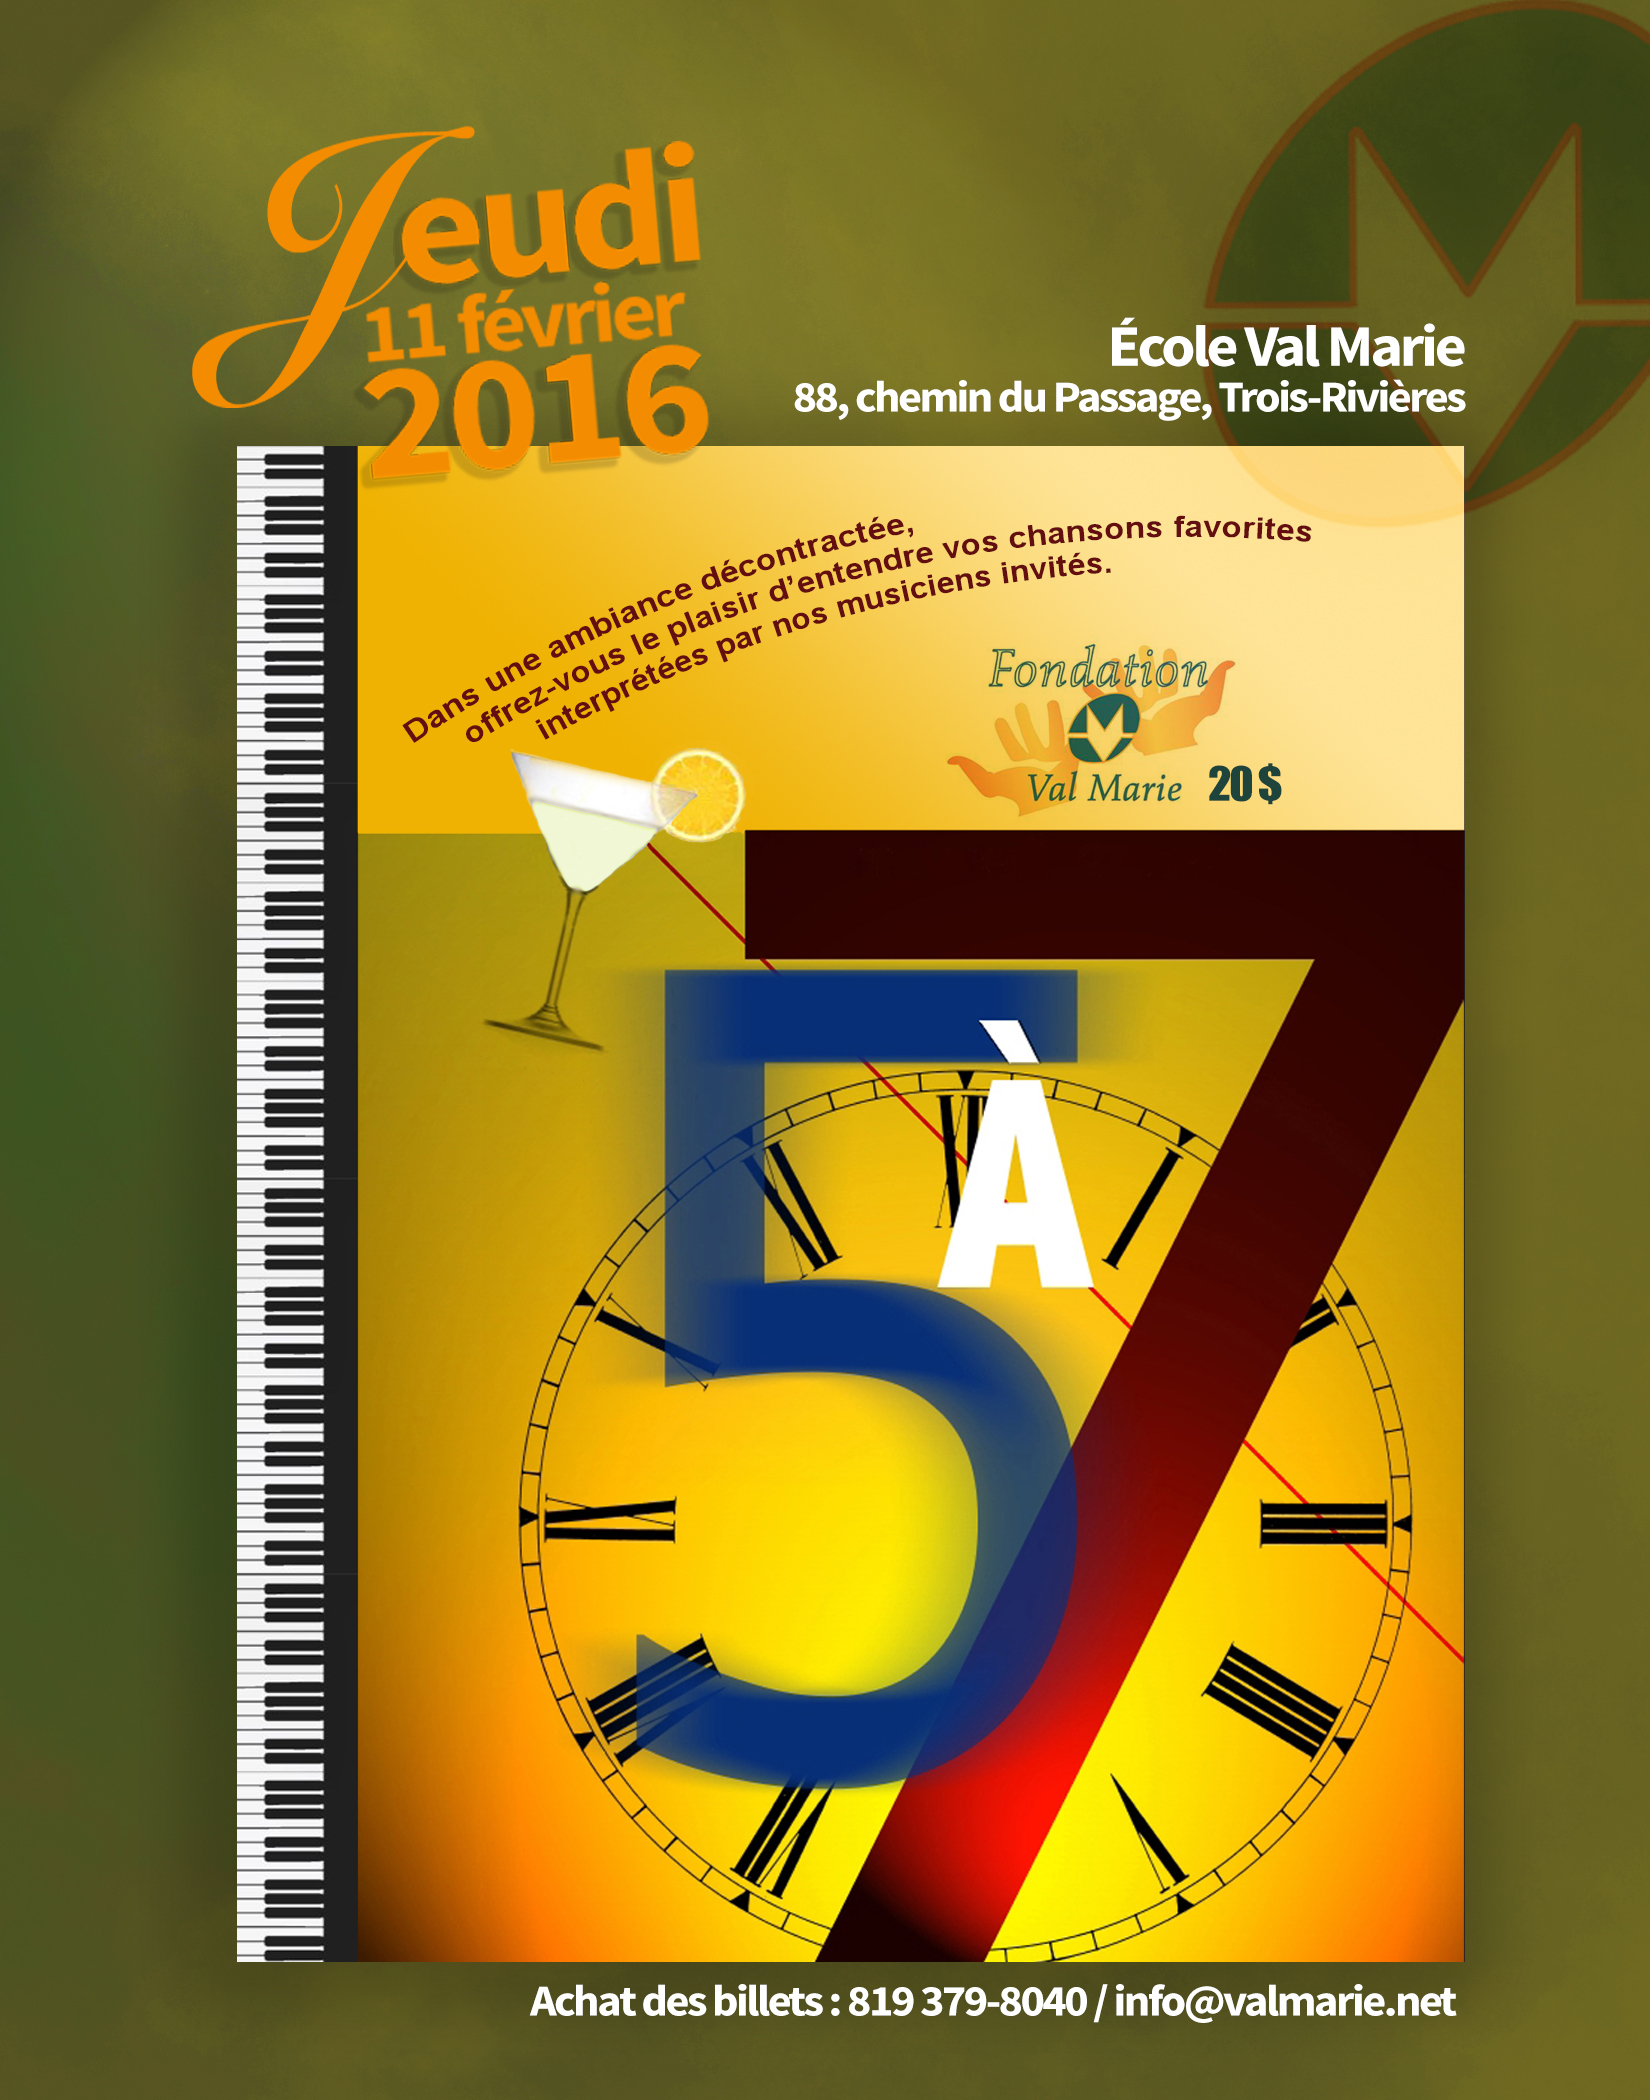 affiche-5-a-7-2016-ecole-val-marie